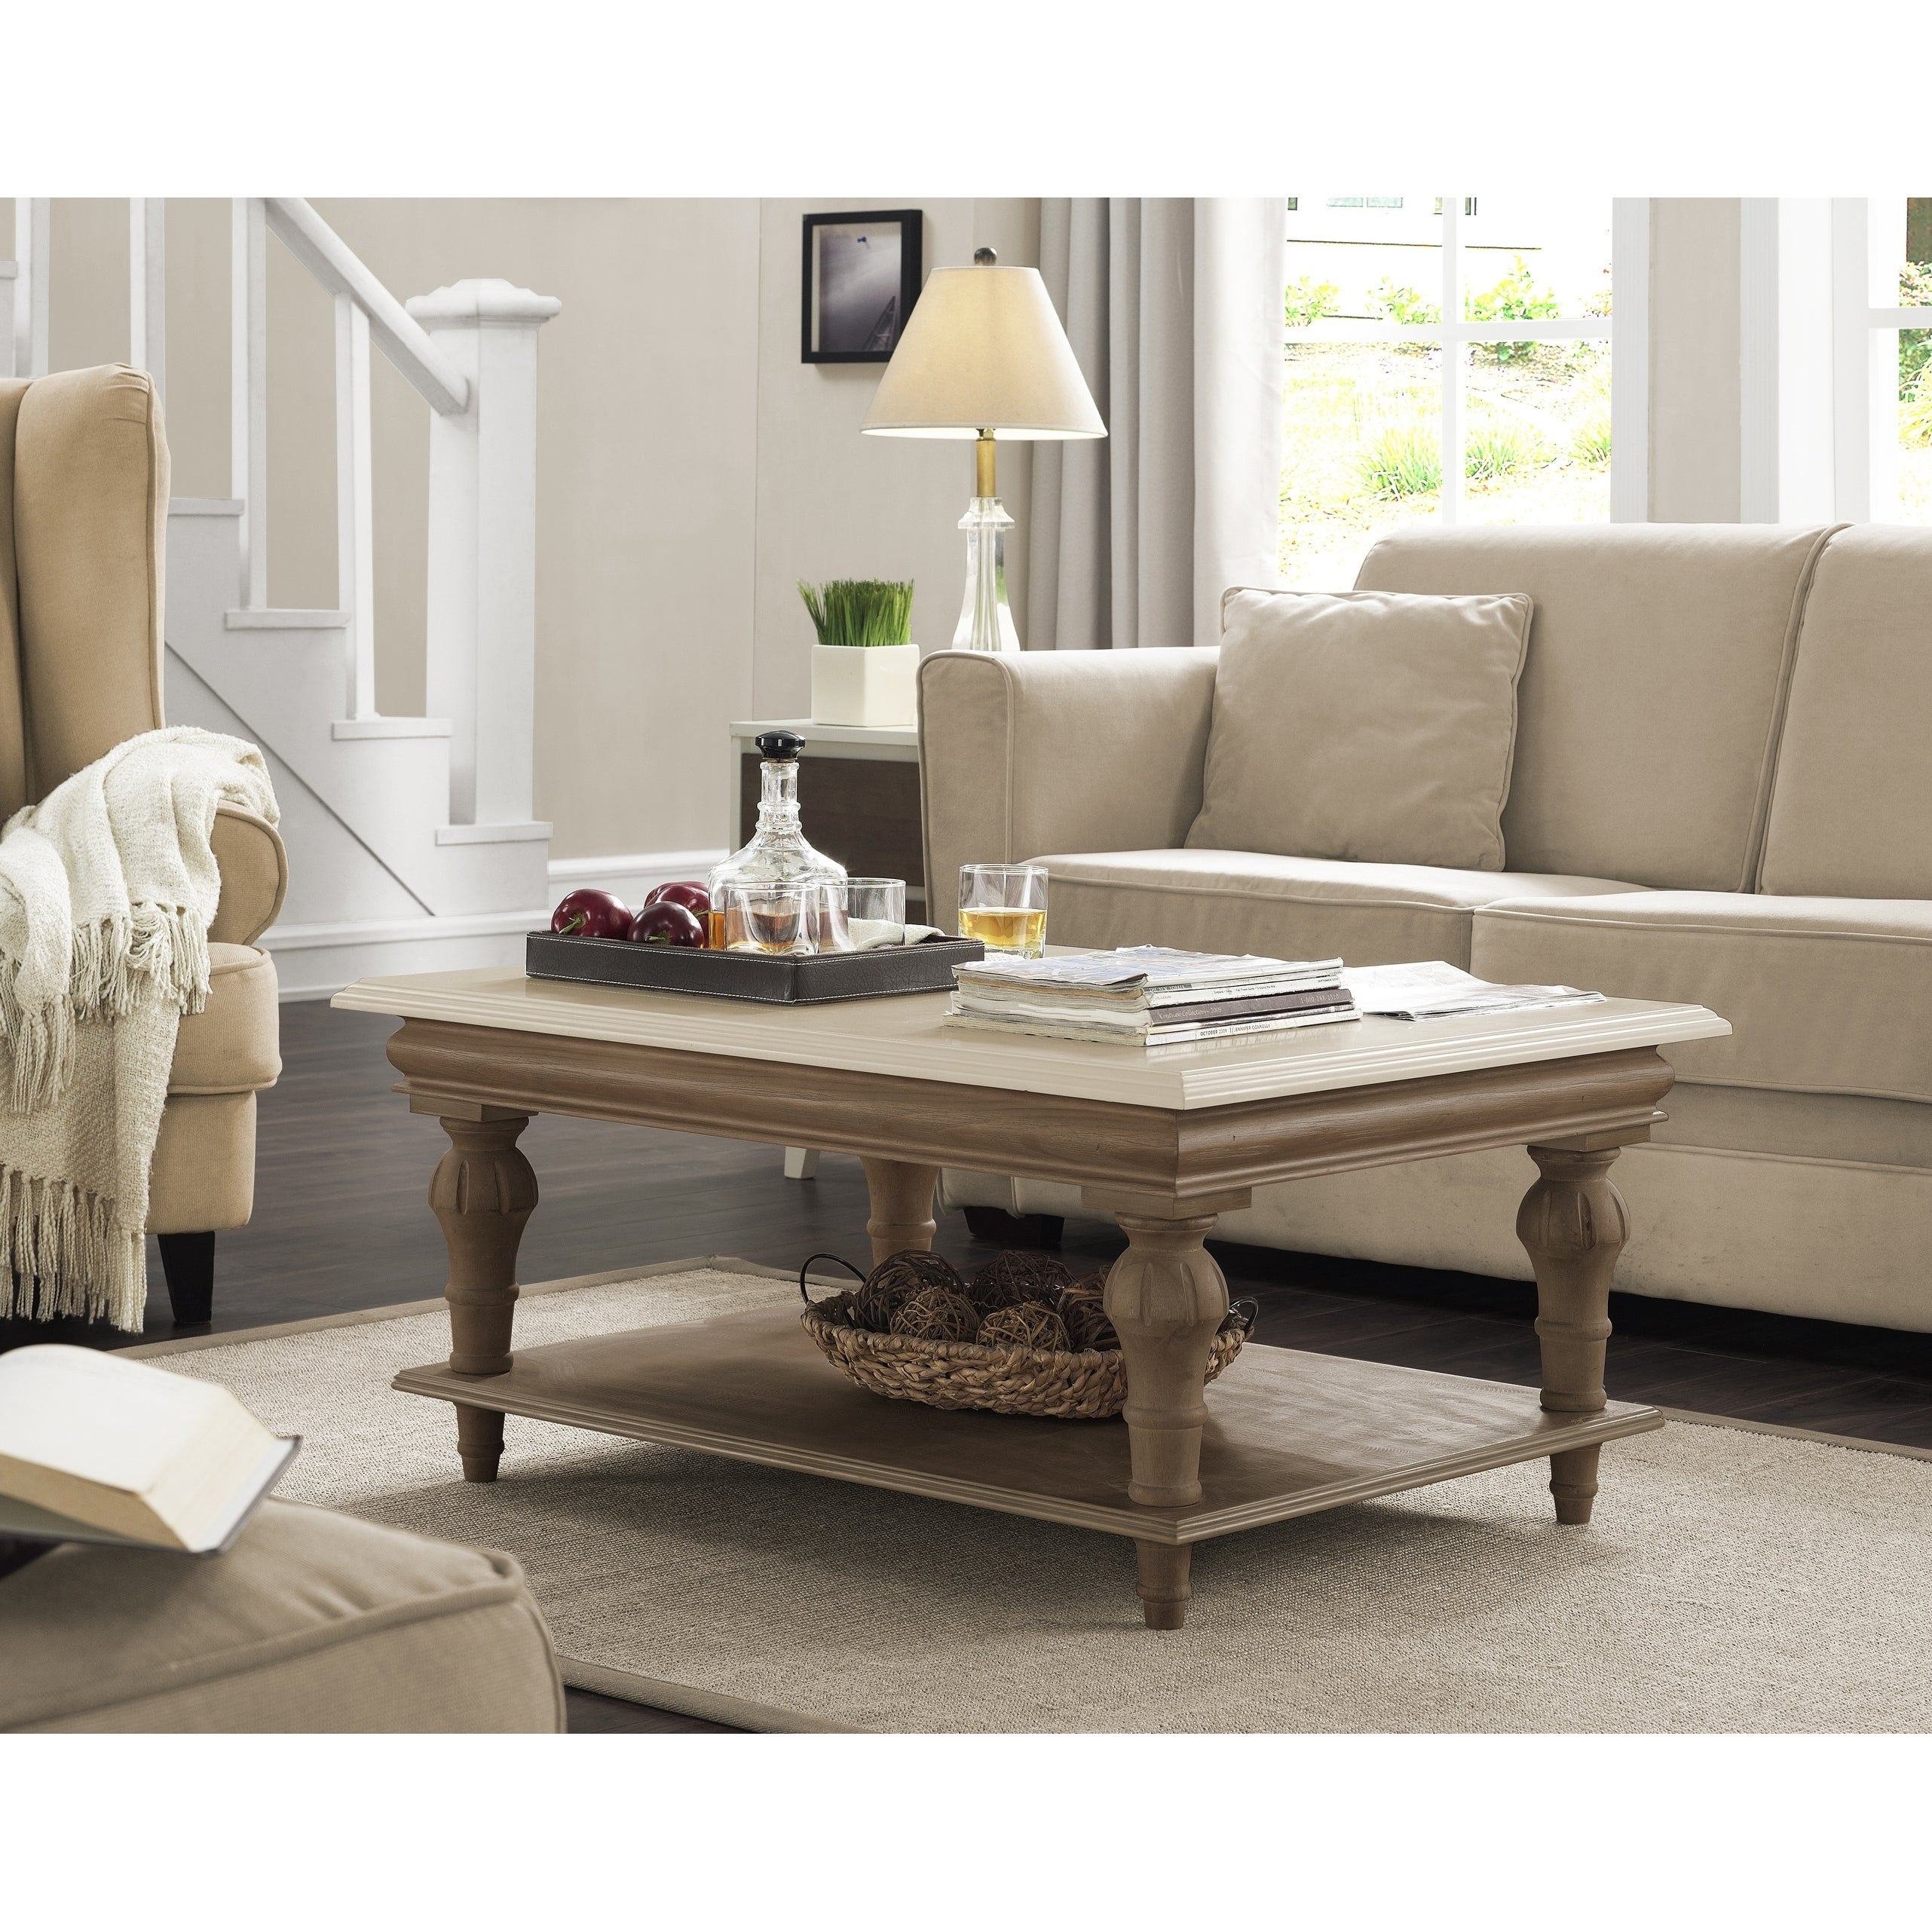 Ordinaire Elements Cream Wood Coffee Table